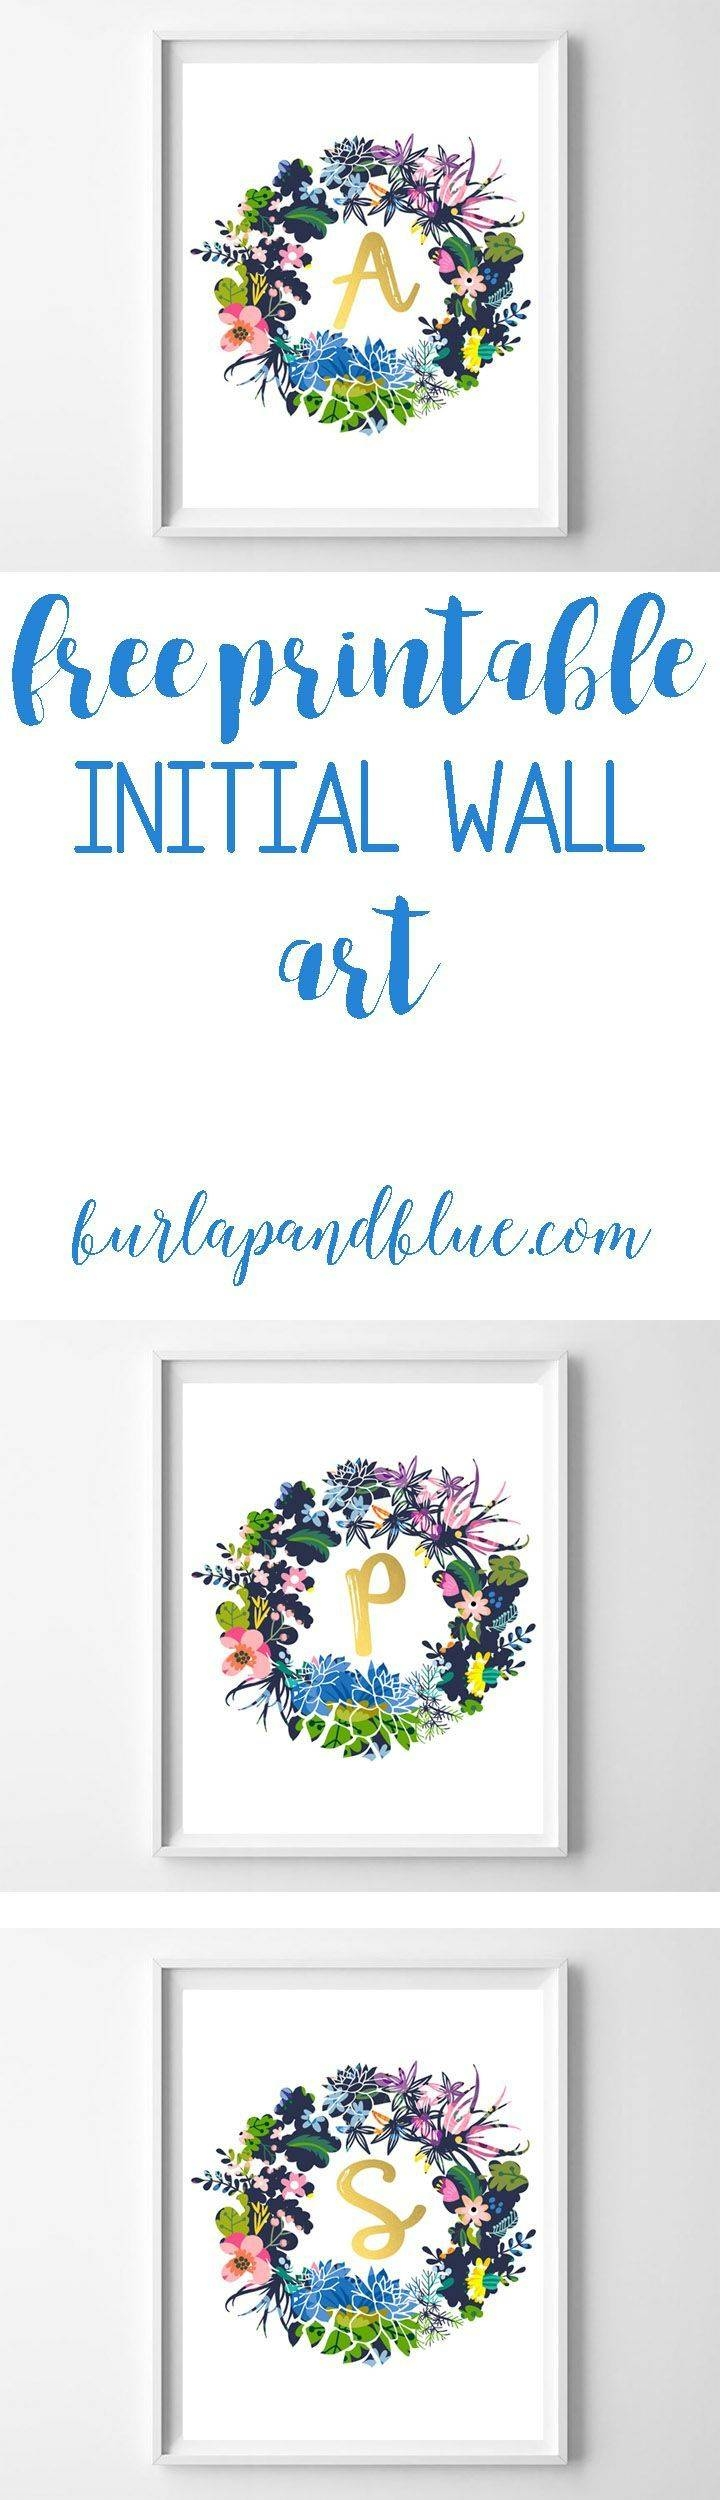 25+ Unique Letter Wall Art Ideas On Pinterest | Letters On Wall Inside Most Recent Cucina Wall Art (View 27 of 30)